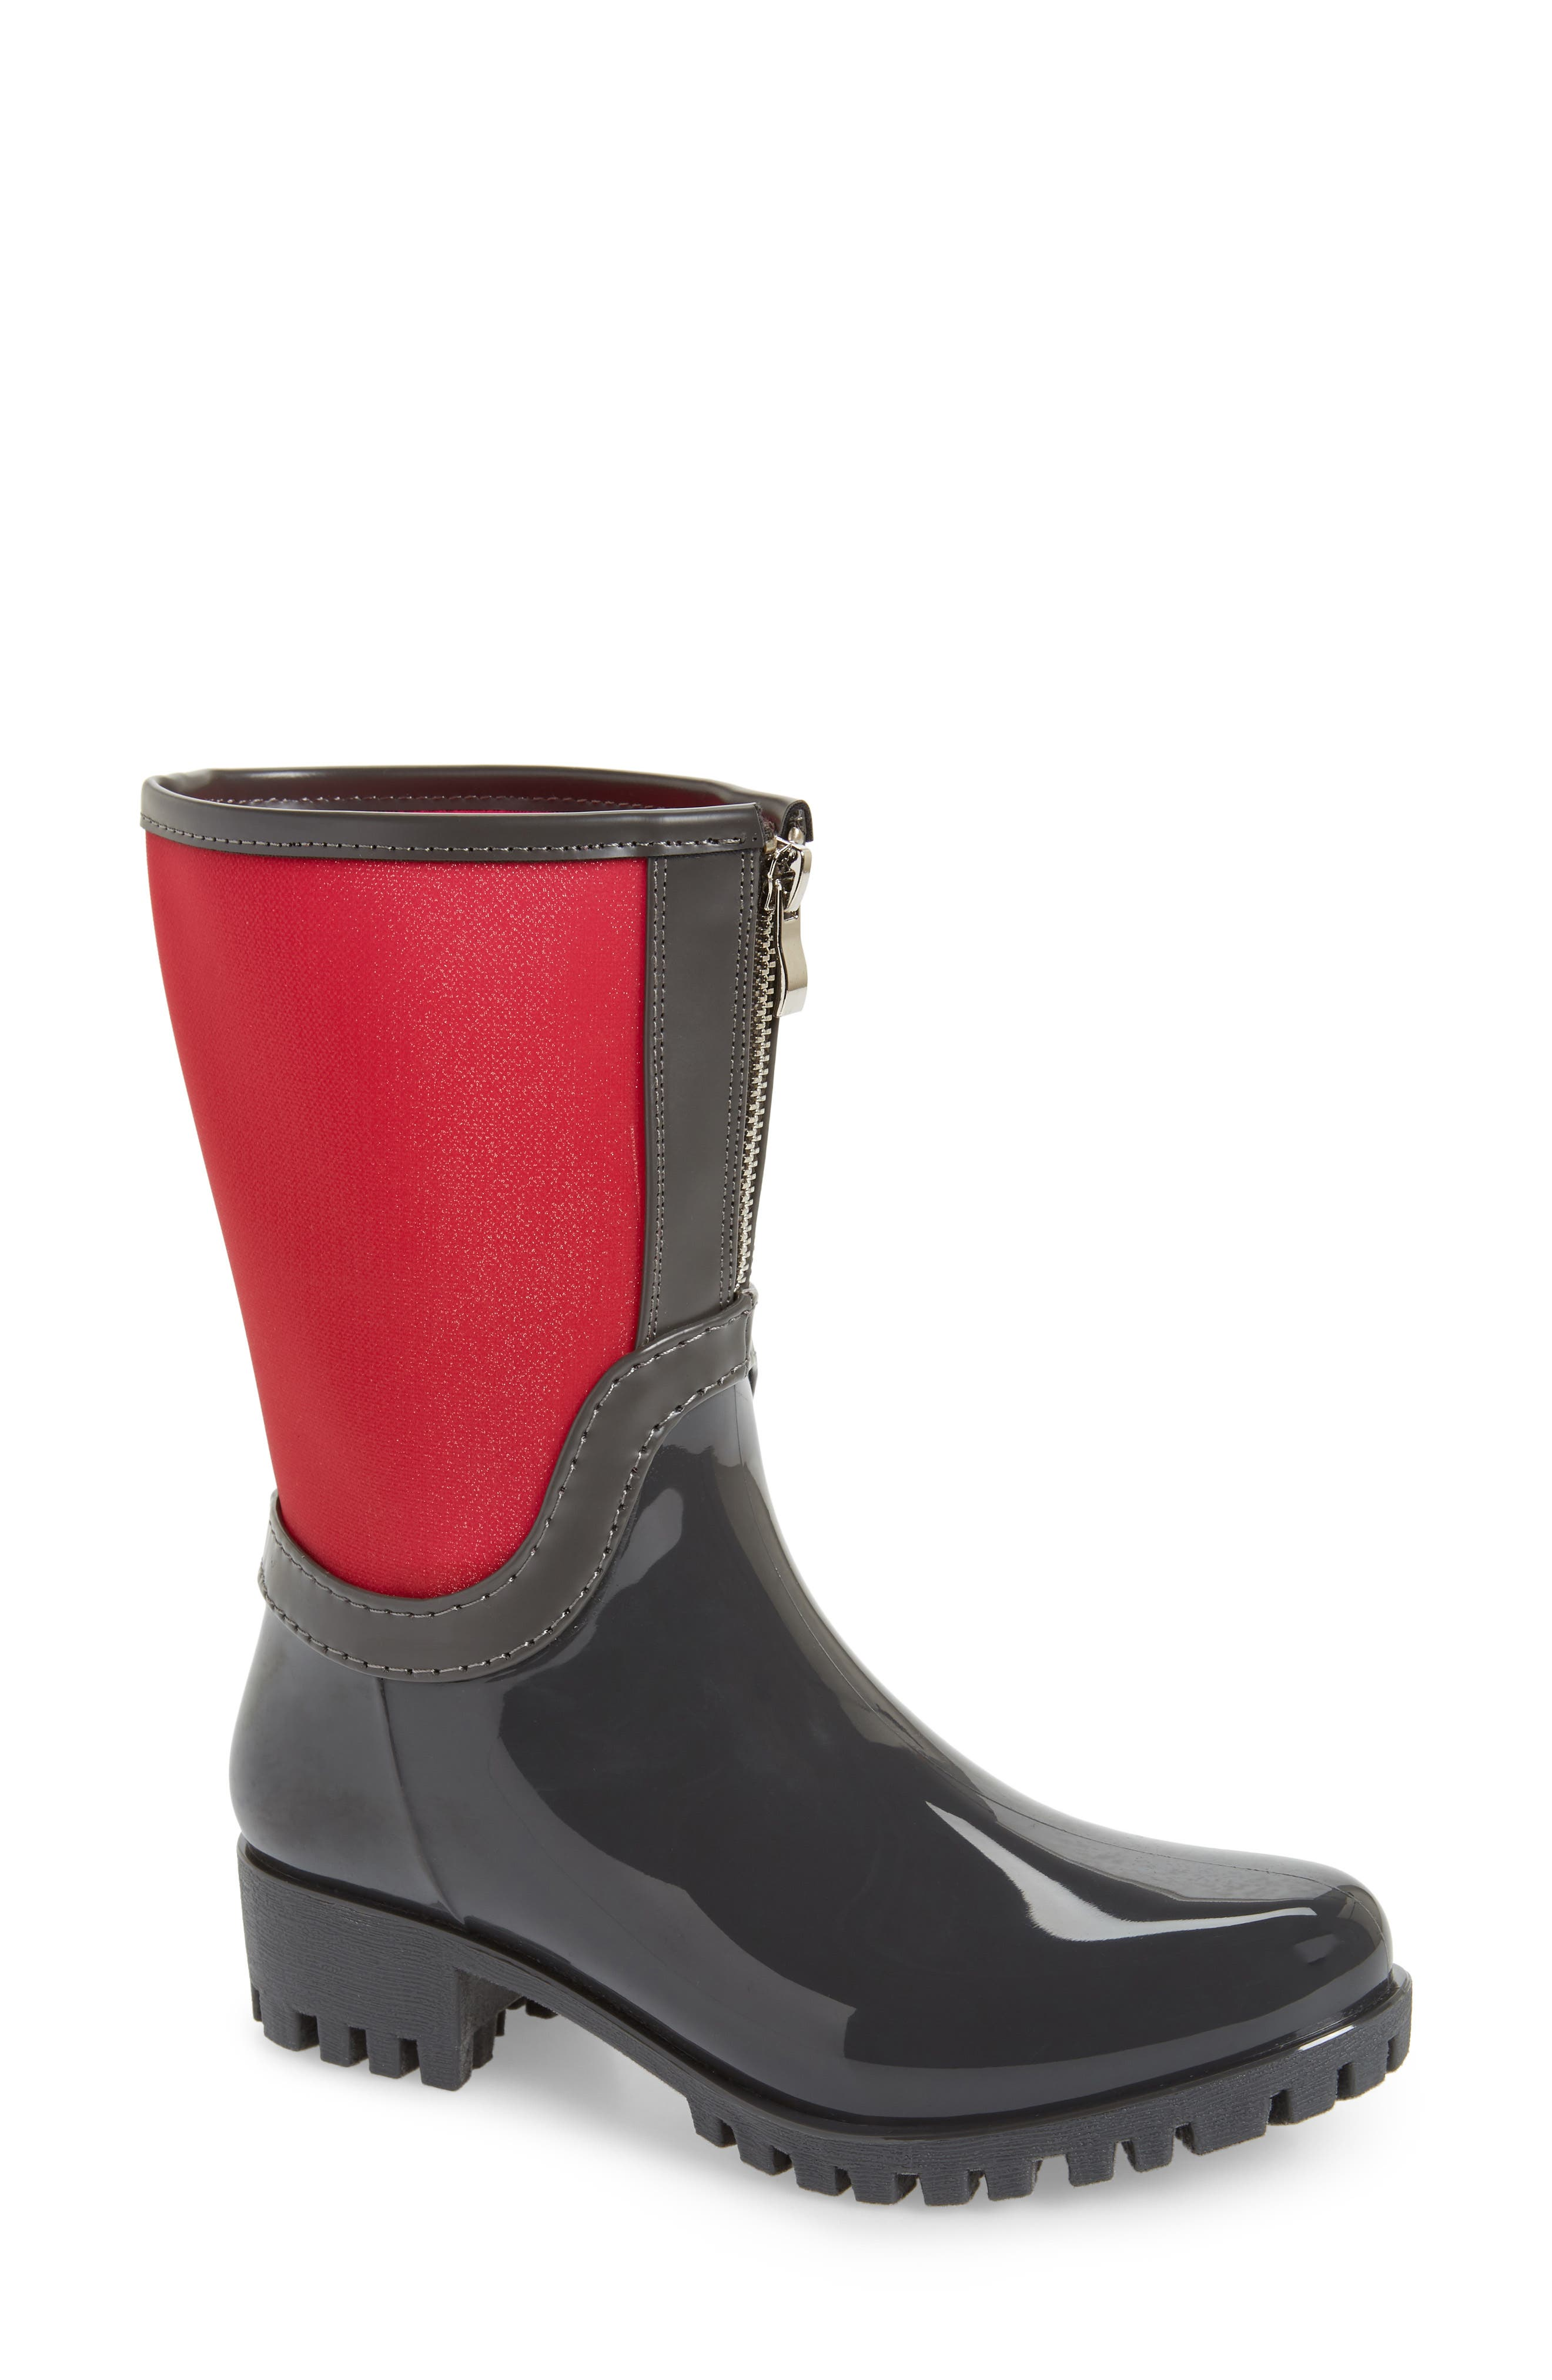 Dryden Sheer Waterproof Boot,                             Main thumbnail 1, color,                             Berry Fabric